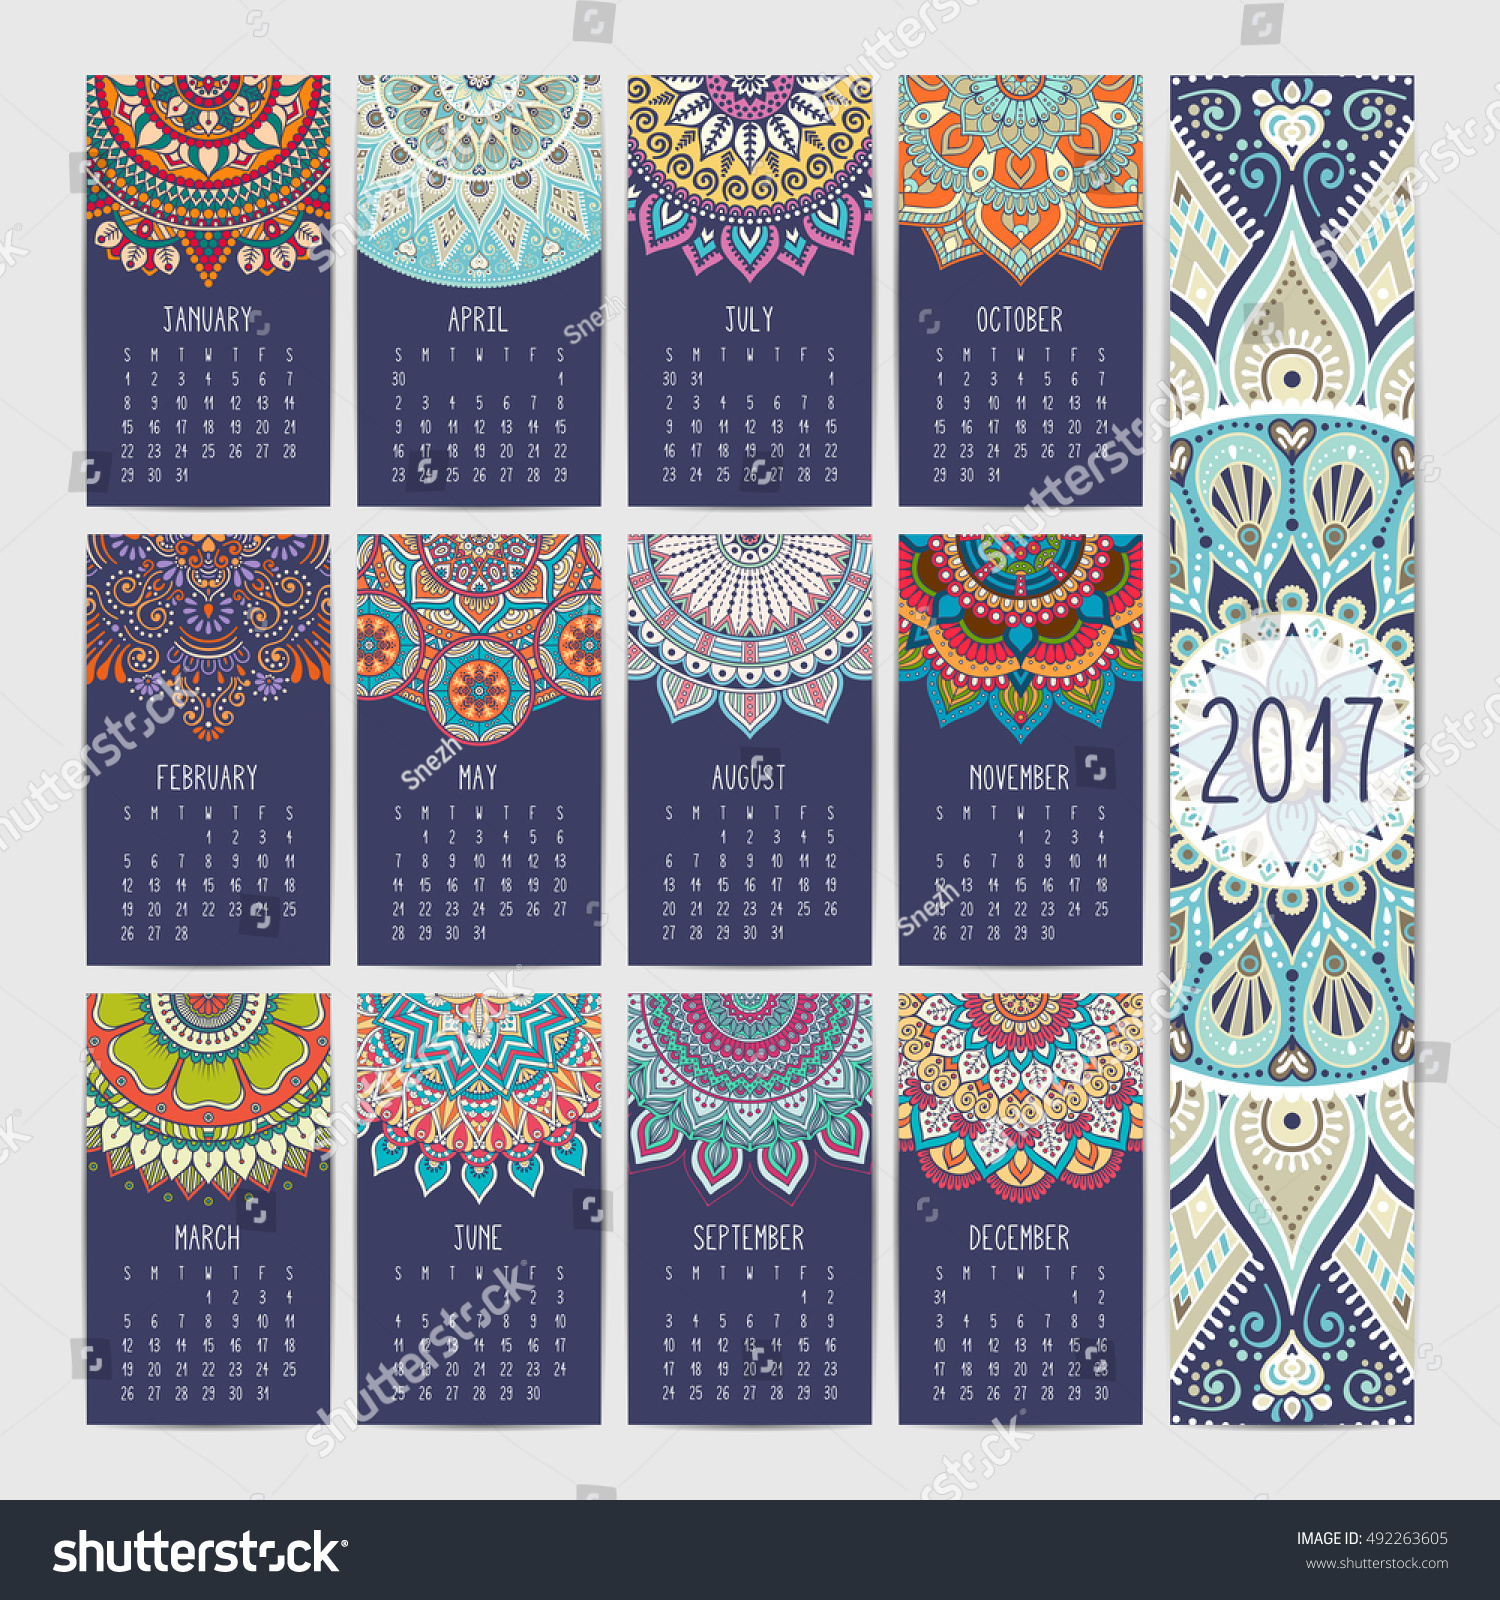 Calendar Vintage Vector : Calendar vintage decorative elements oriental 库存矢量图